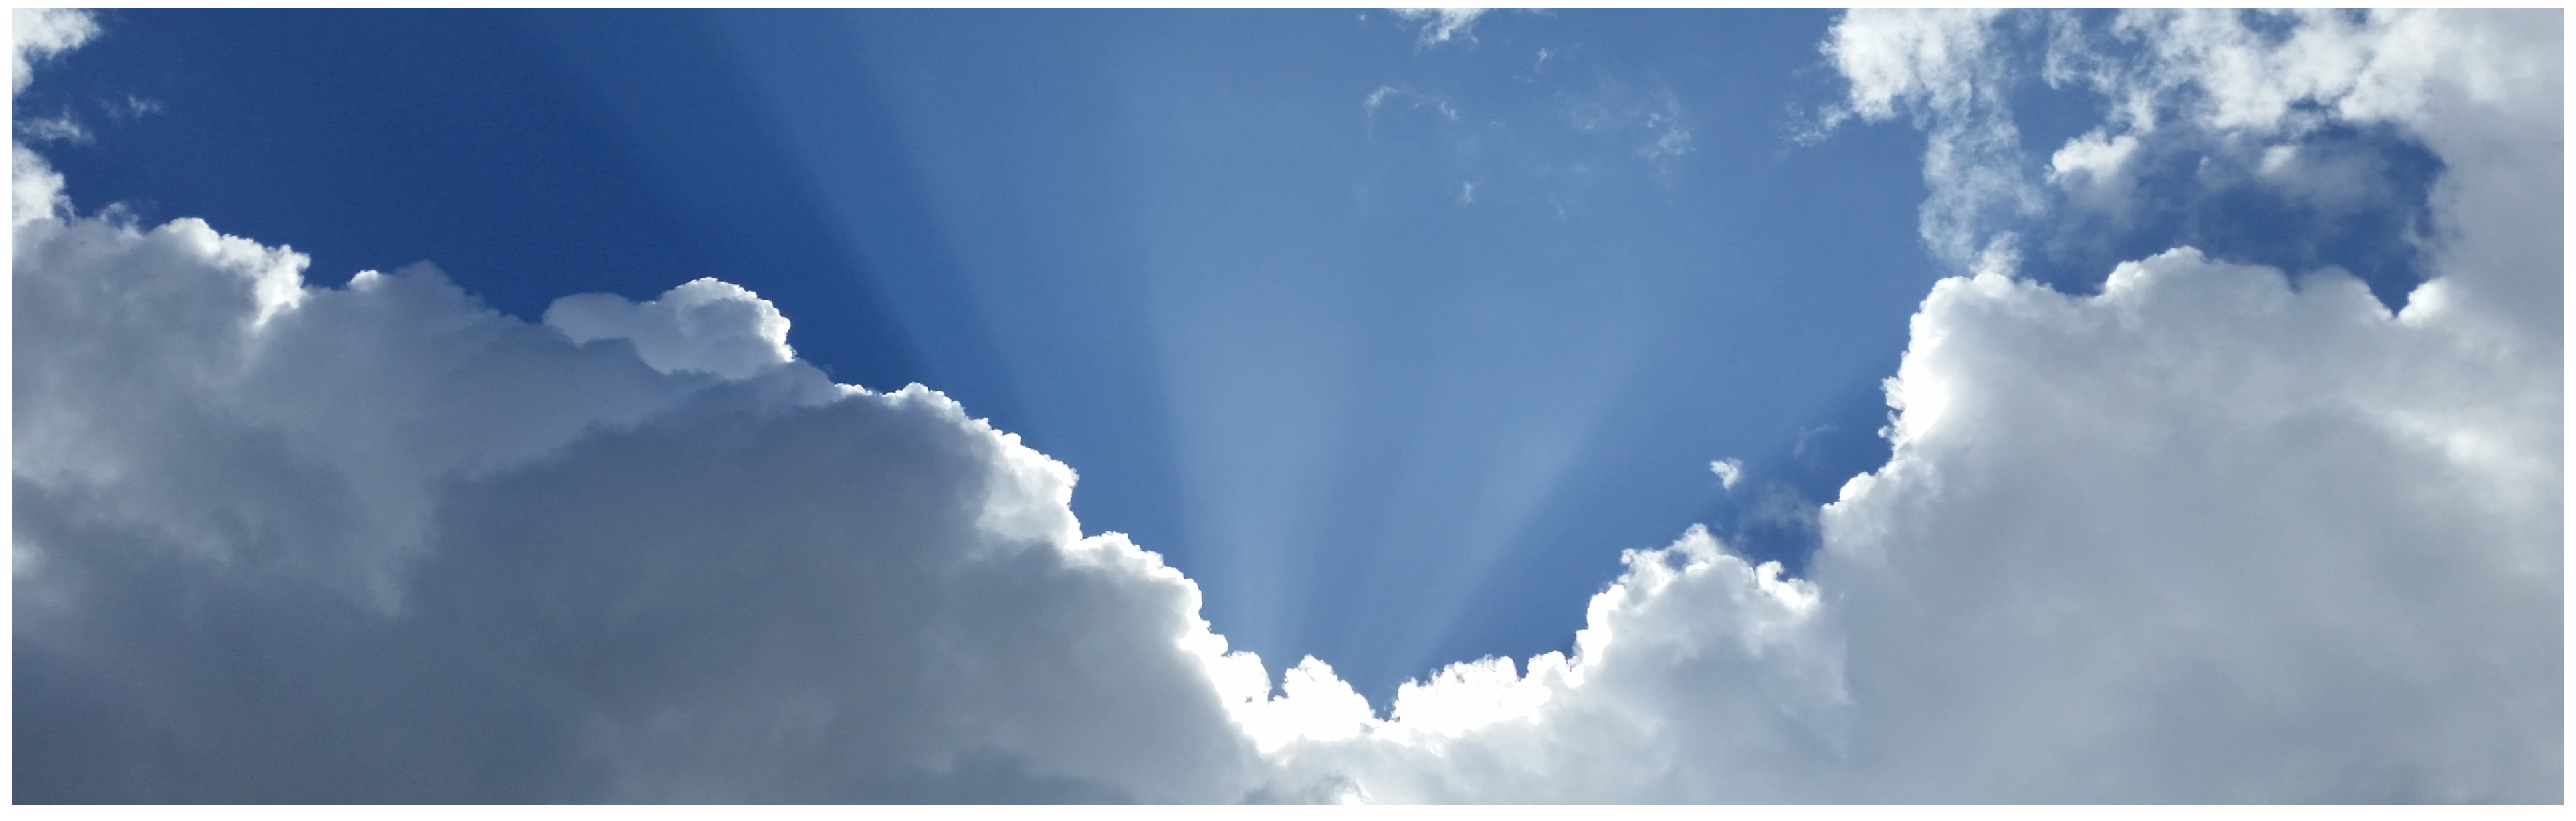 Clouds for Funerals and memorial services